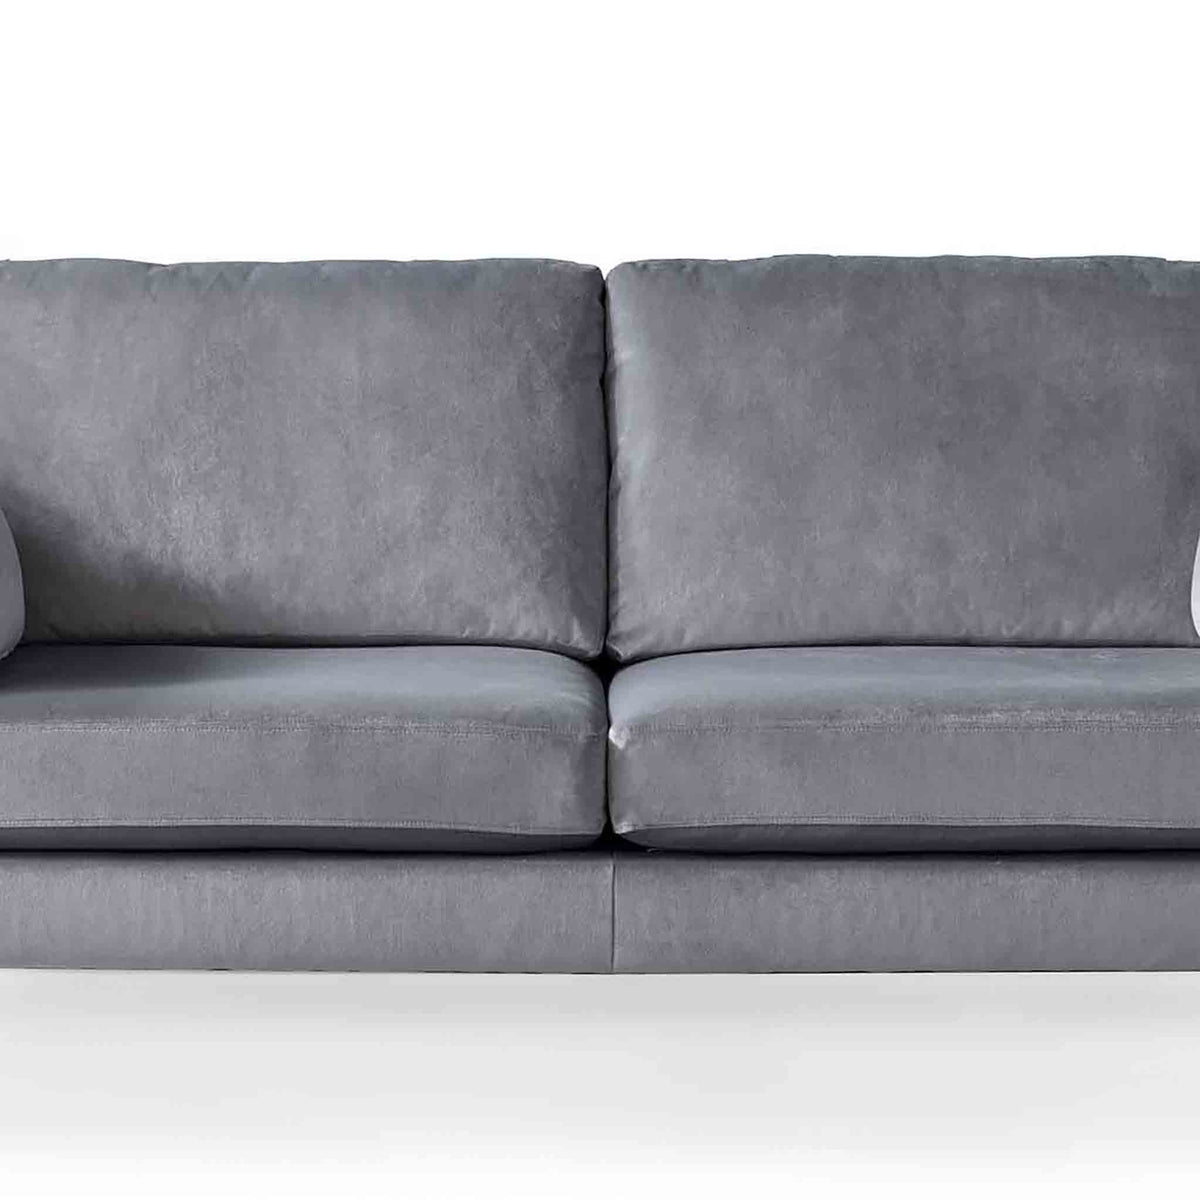 Anton Grey 2 Seater Sofa - Close up of mid section of sofa